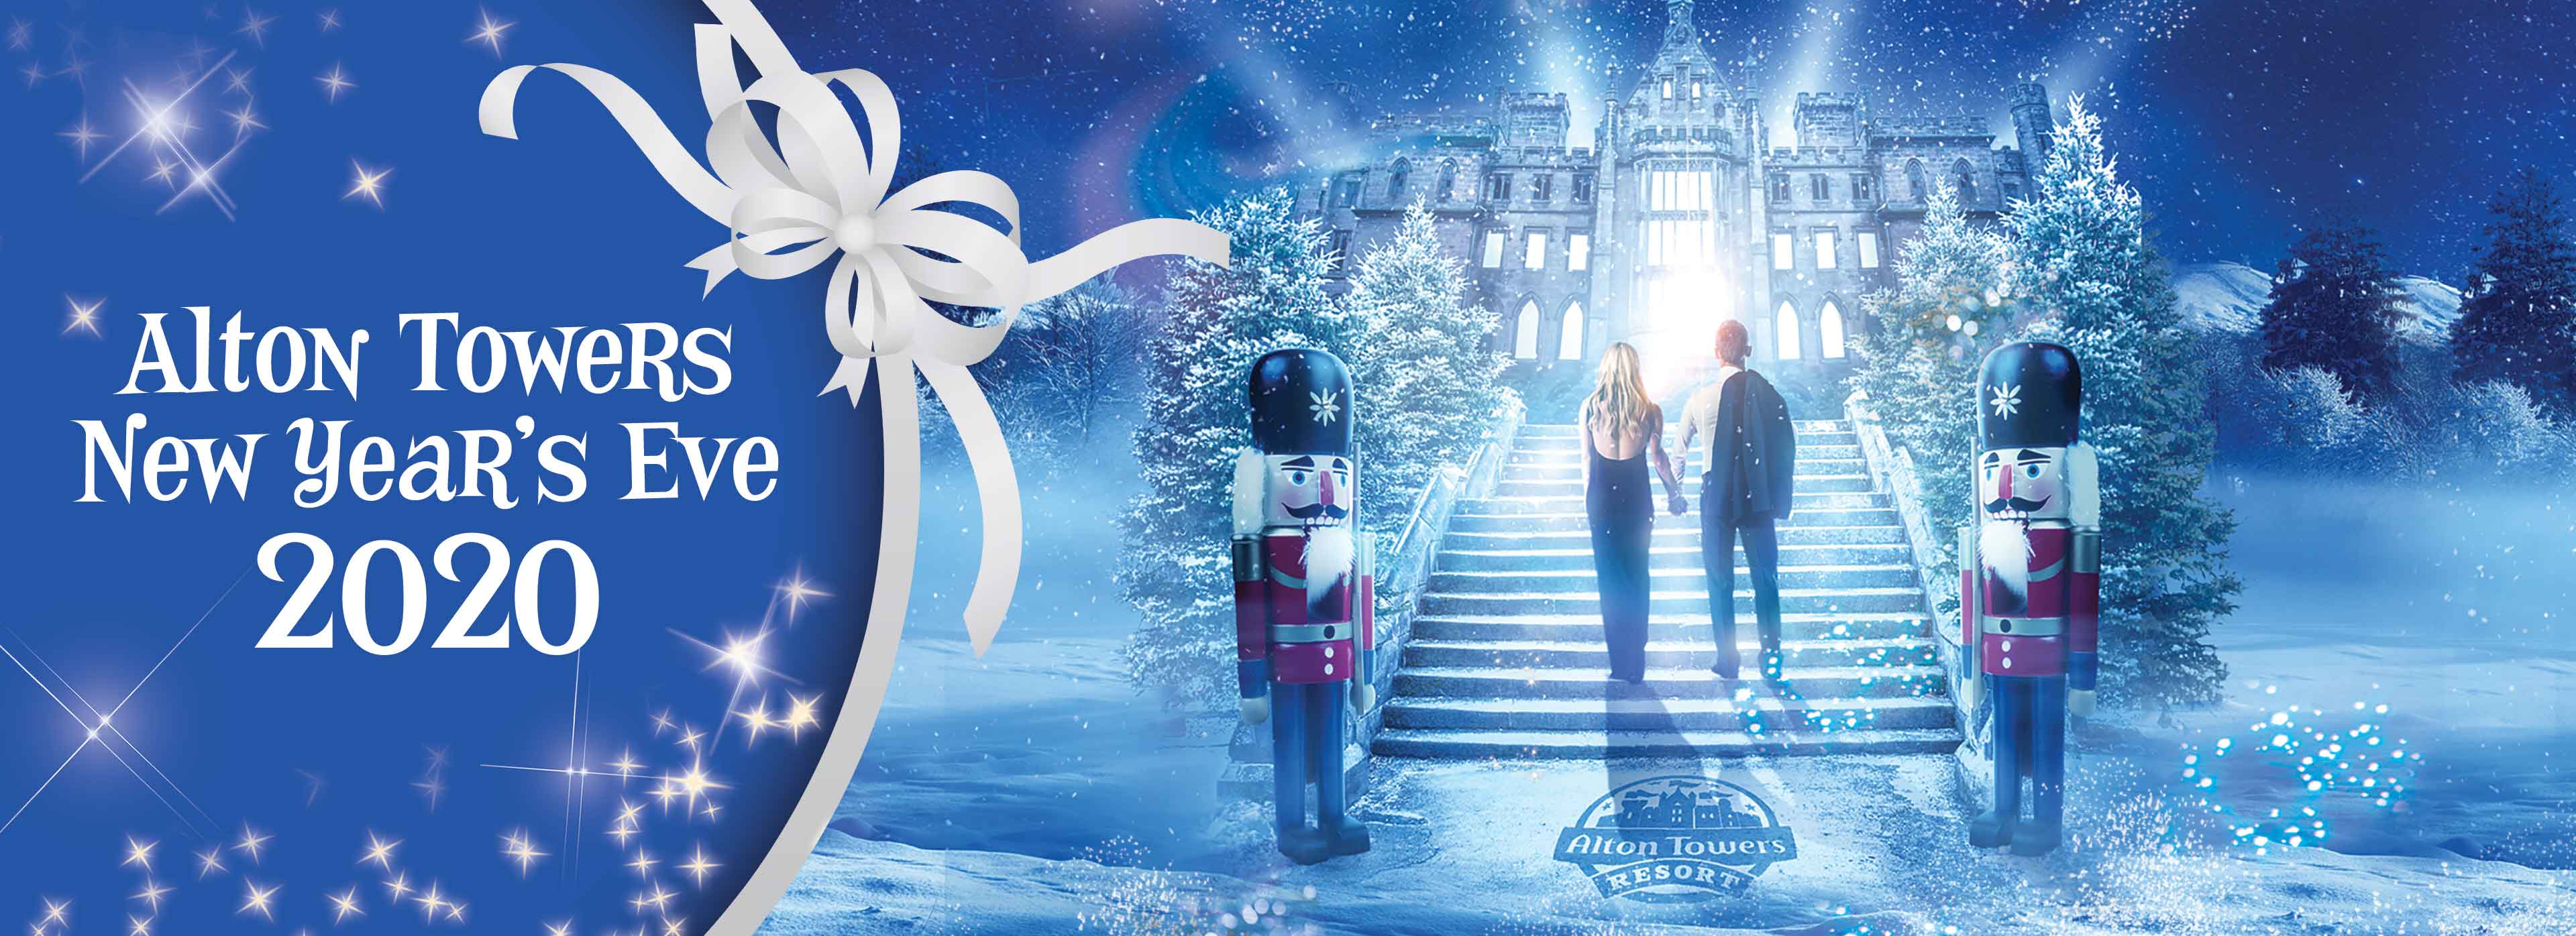 Ultimate 2020 New Year's Family Celebration at Alton Towers Resort